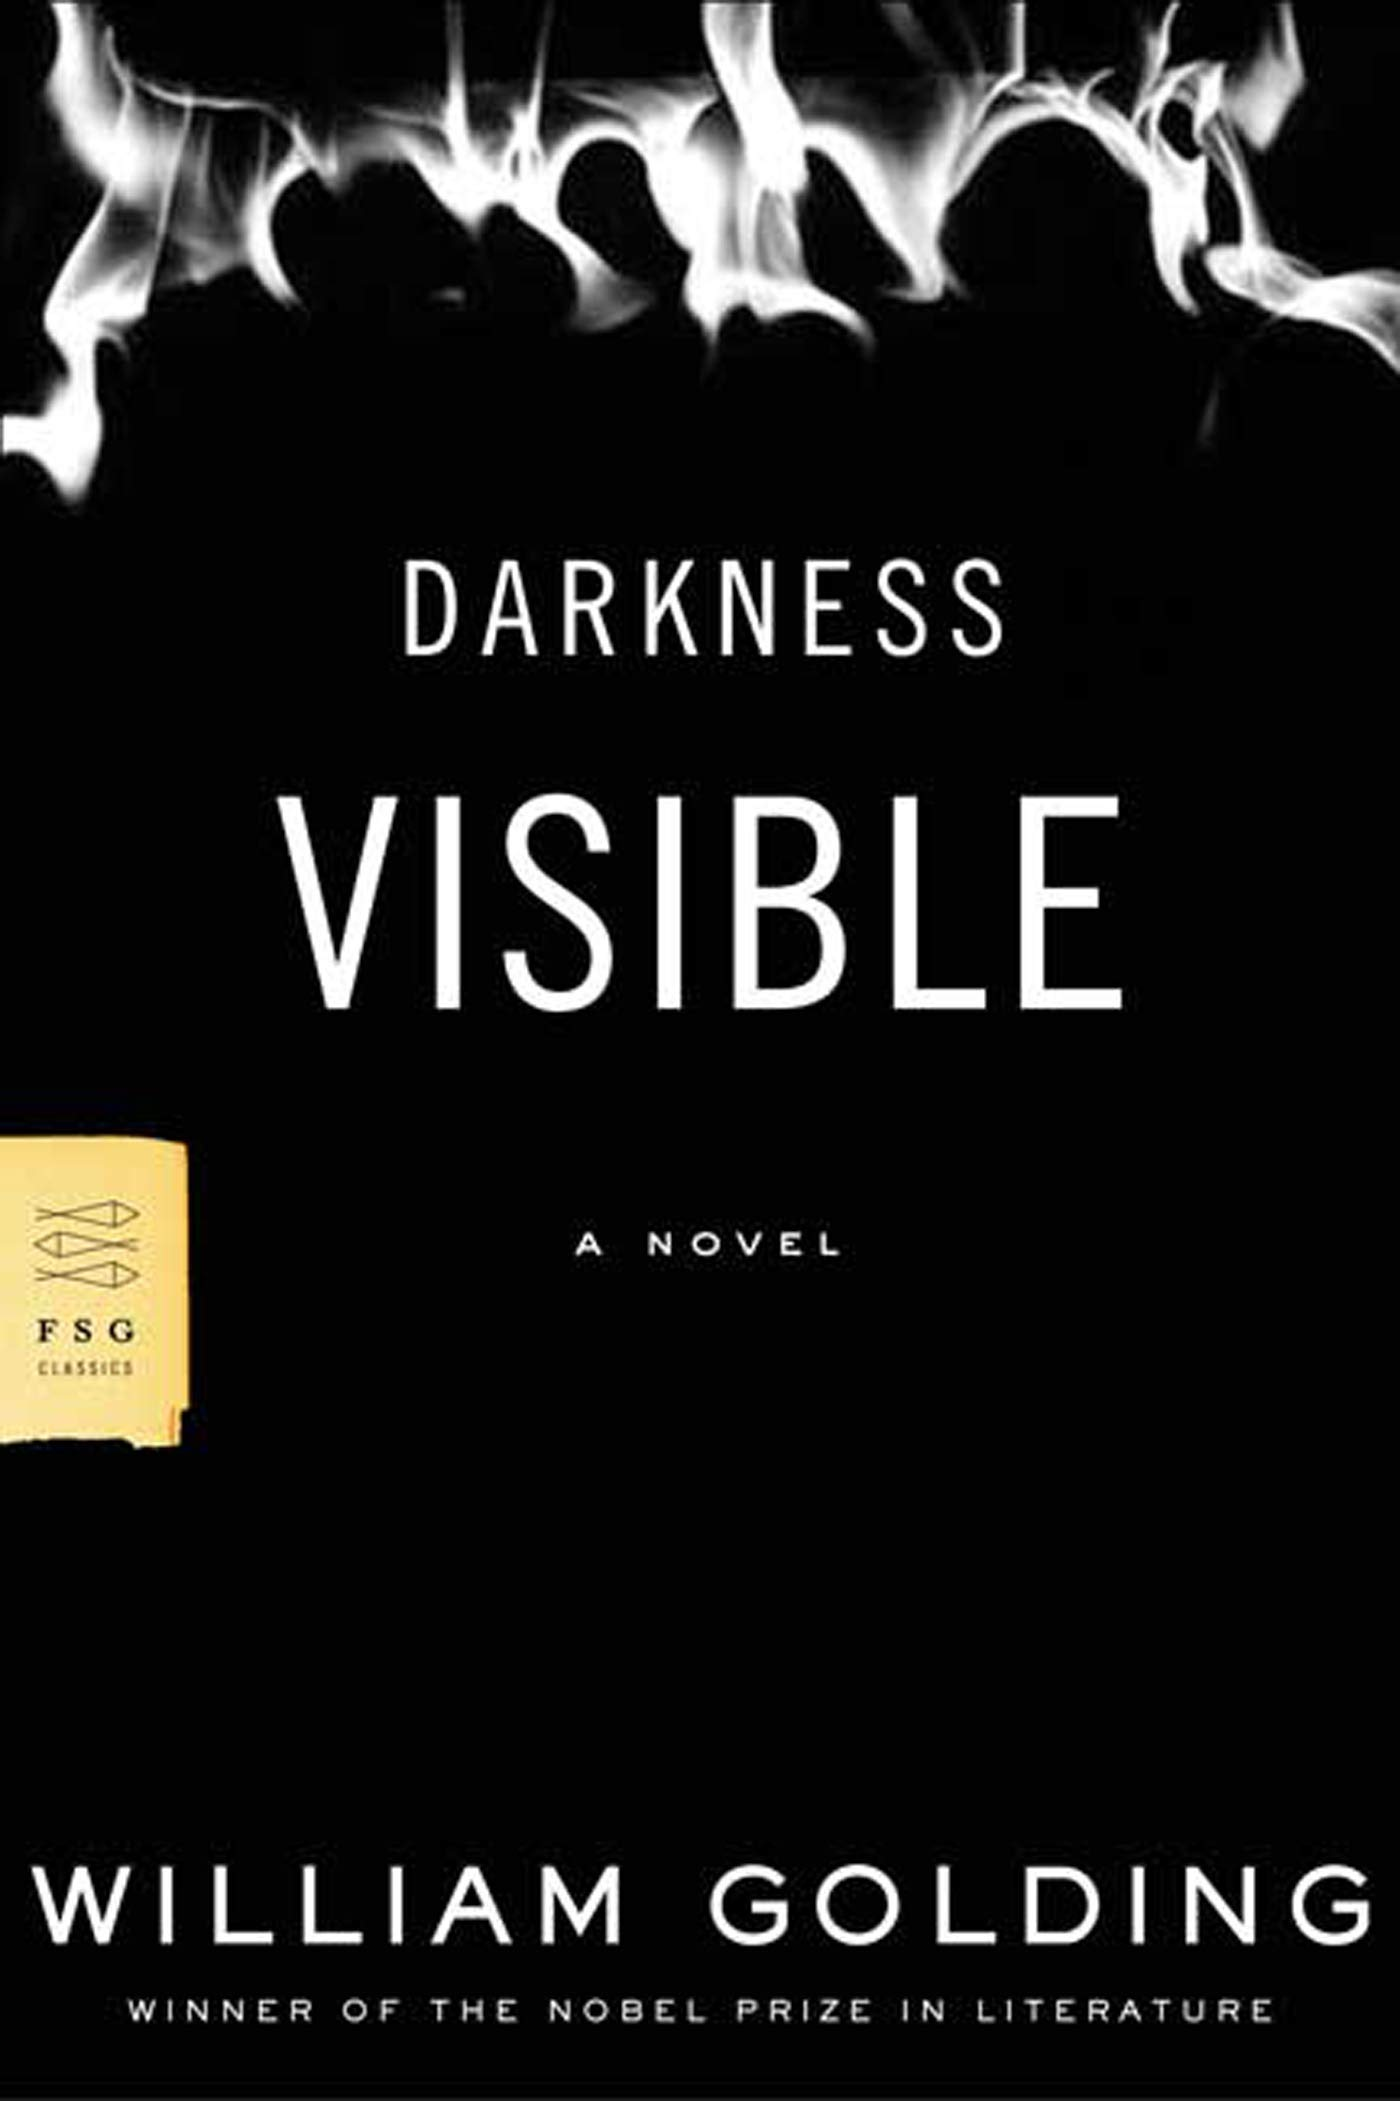 Download Darkness Visible By William Golding